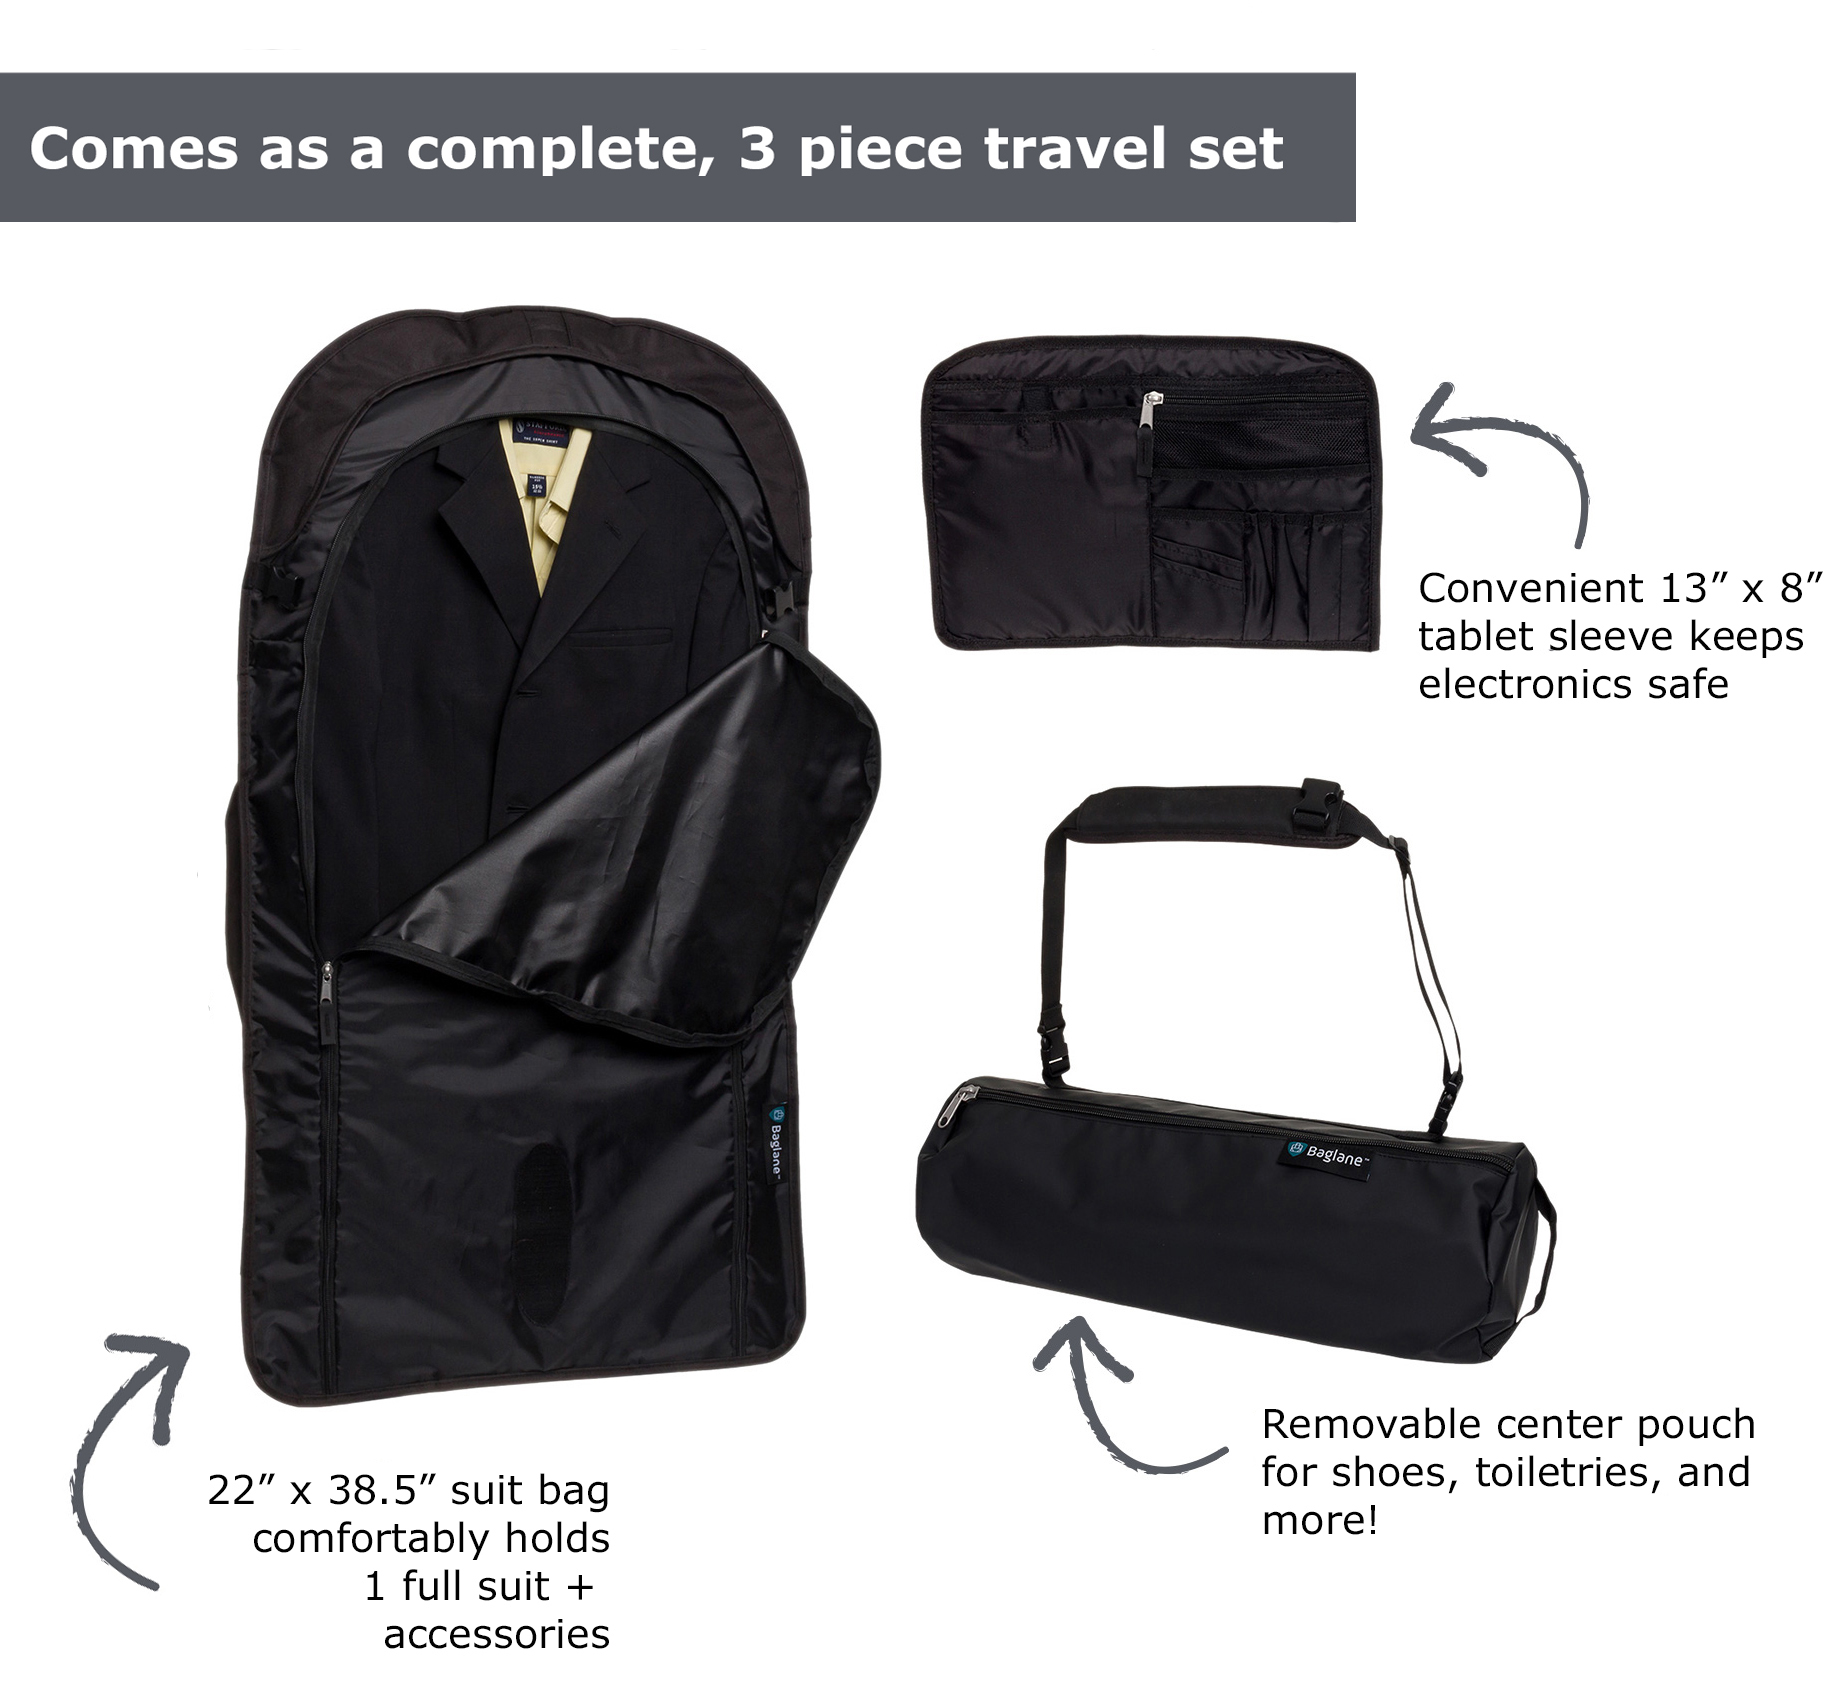 Garment Suit Bag by Baglane - Travel Carry on | eBay